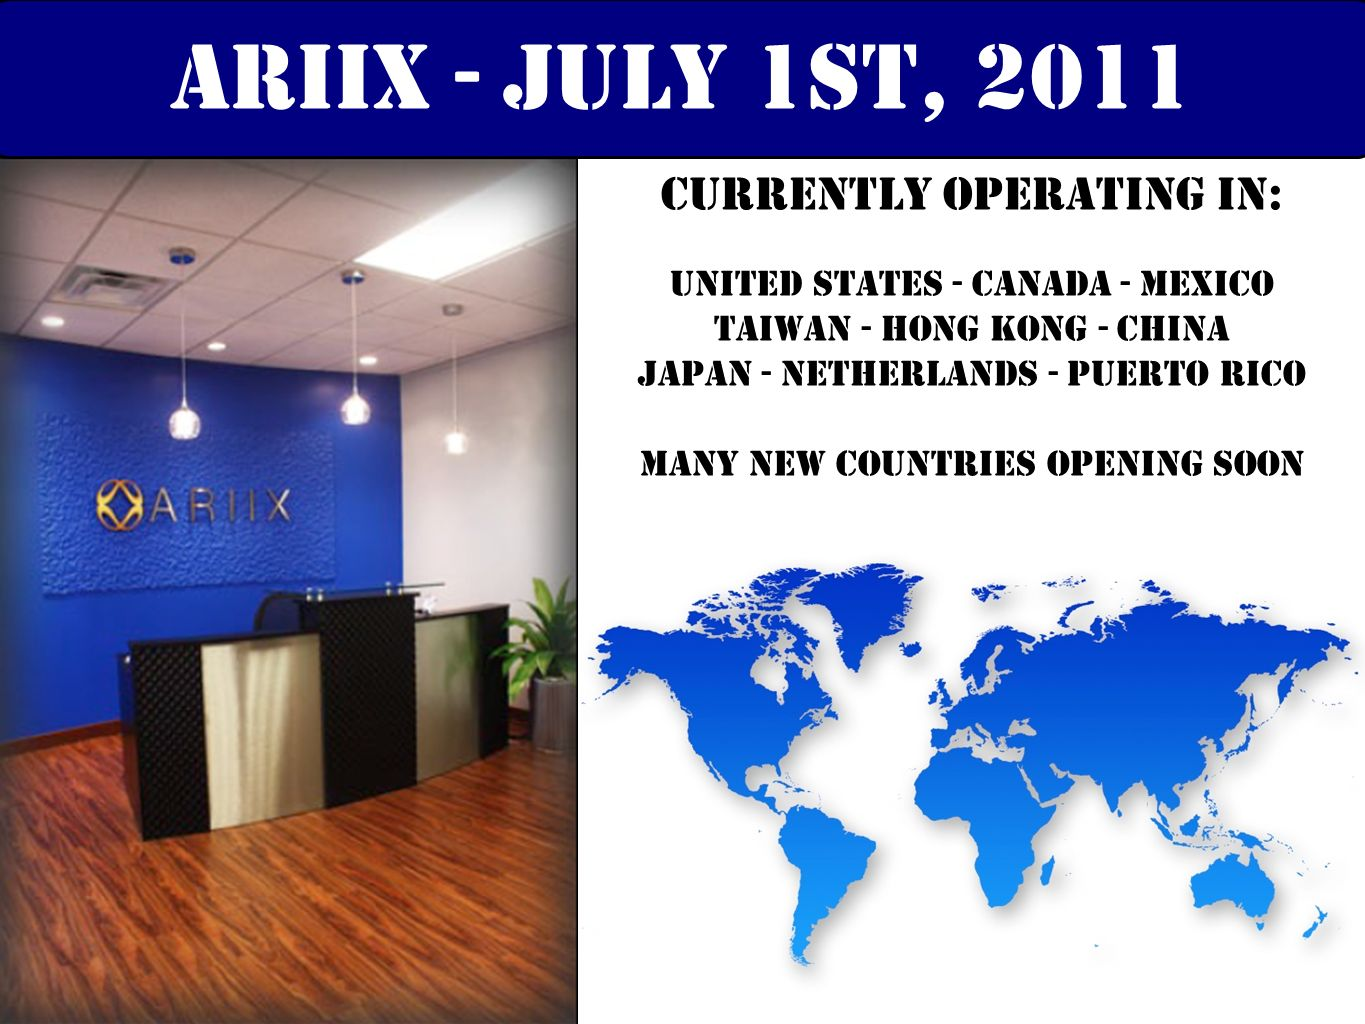 ariix - july 1st, 2011 Currently operating in: